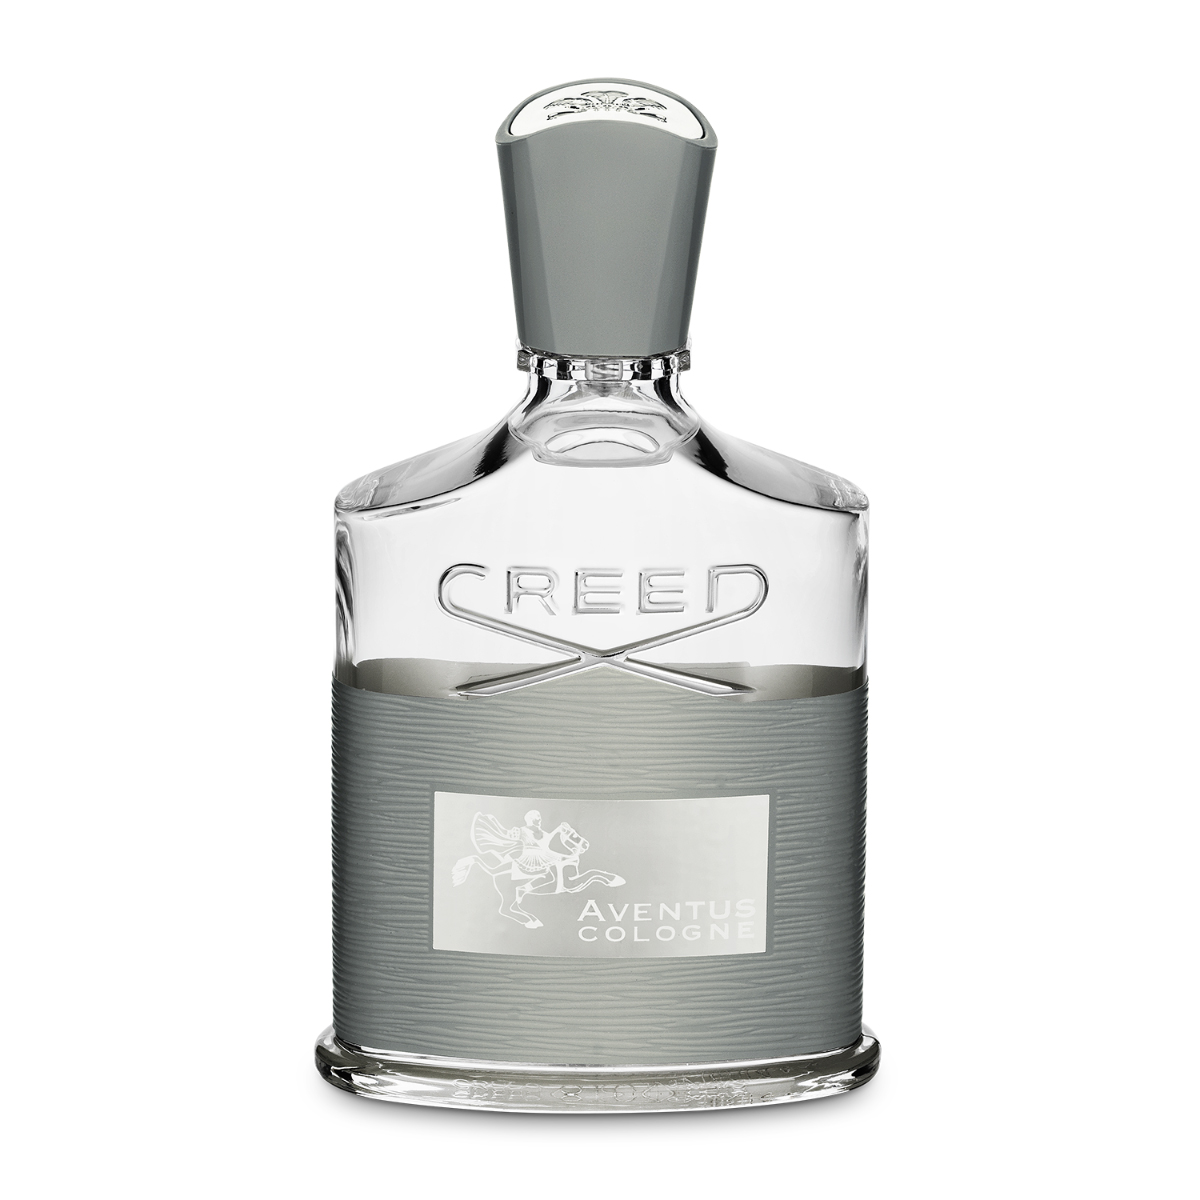 CREED Aventus Cologne Millesime 100 ml